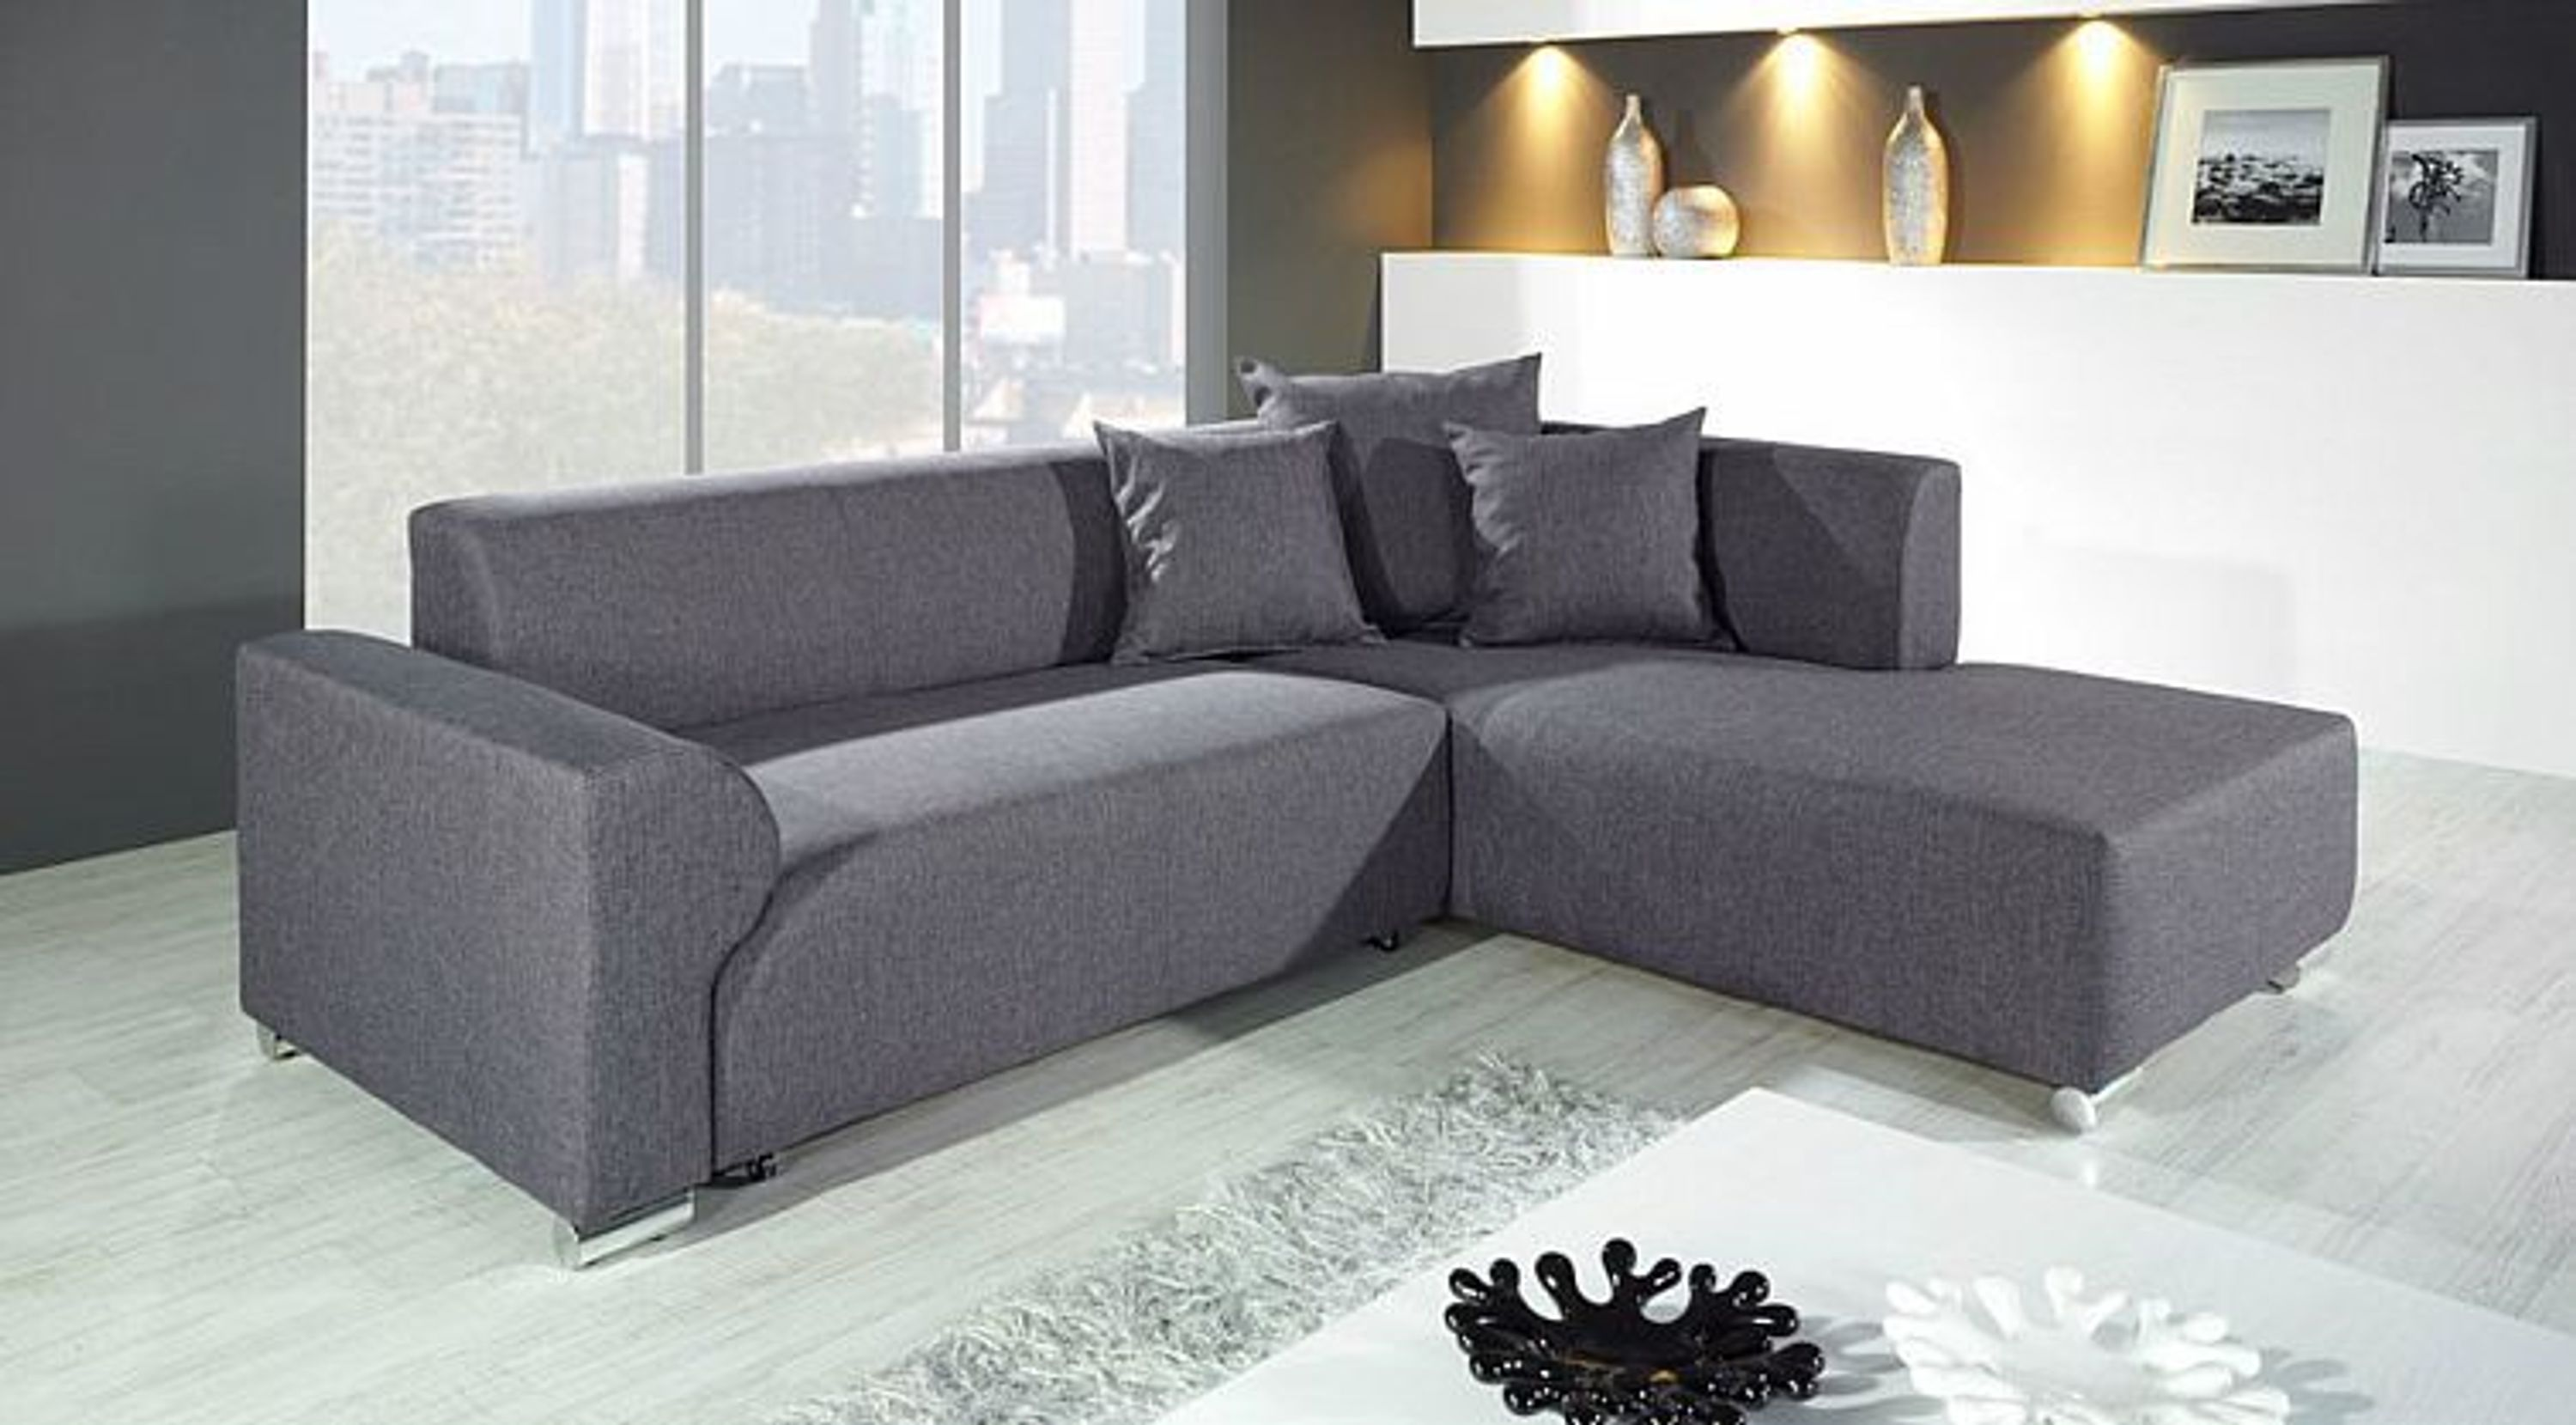 sofa couch m bel schlafsofa schlafcouch eckcouch ecksofa. Black Bedroom Furniture Sets. Home Design Ideas